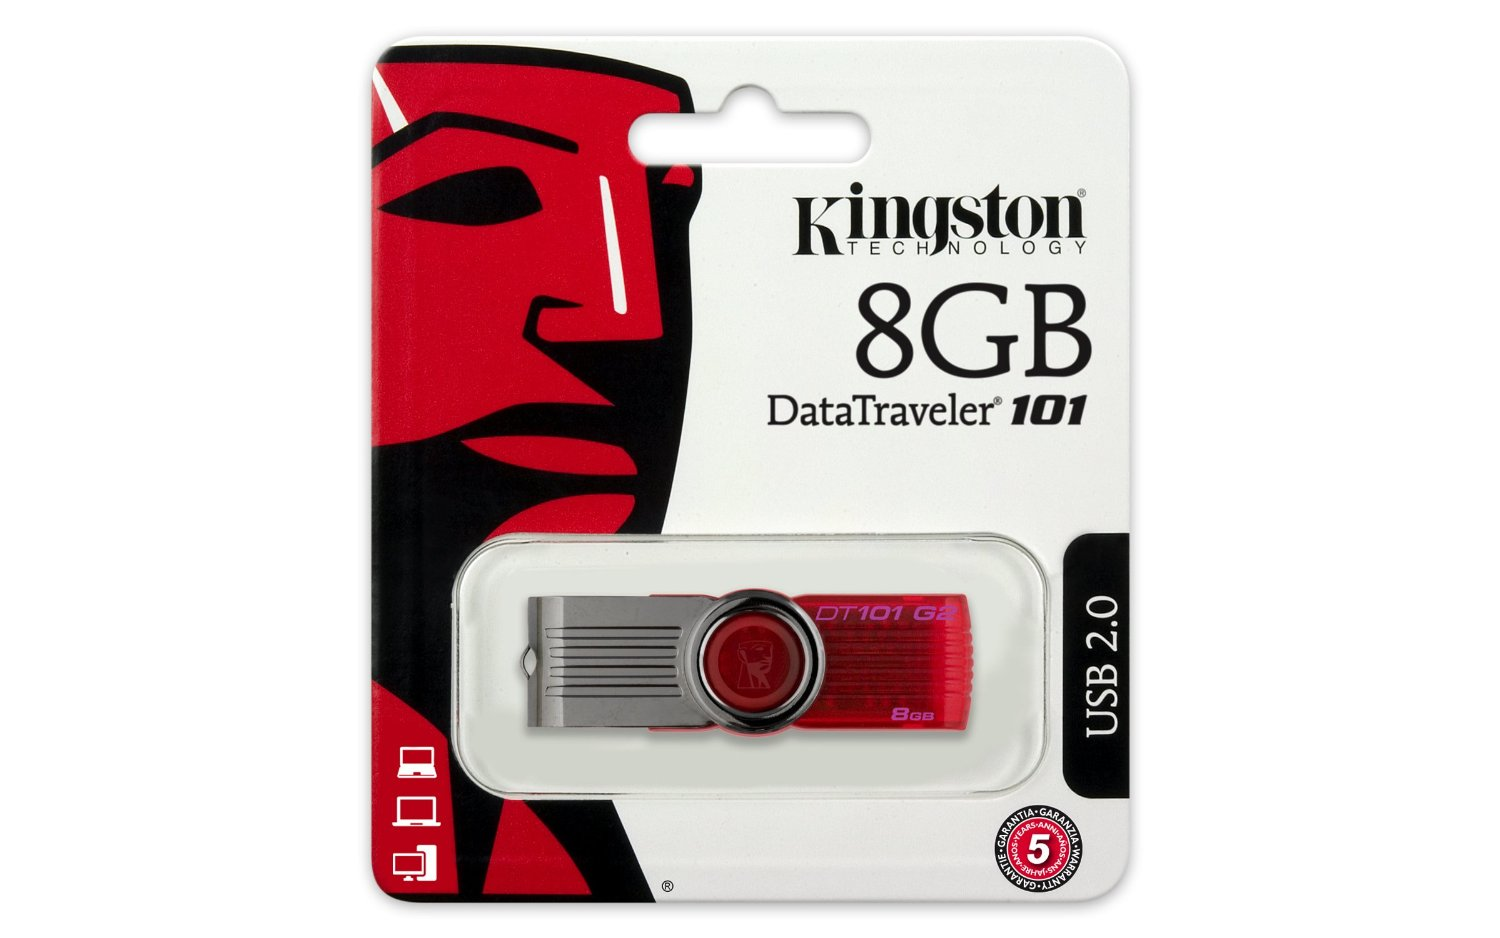 USB 8GB Kingston DataTraveler 101 Generation 2 (DT101G2/8GB)